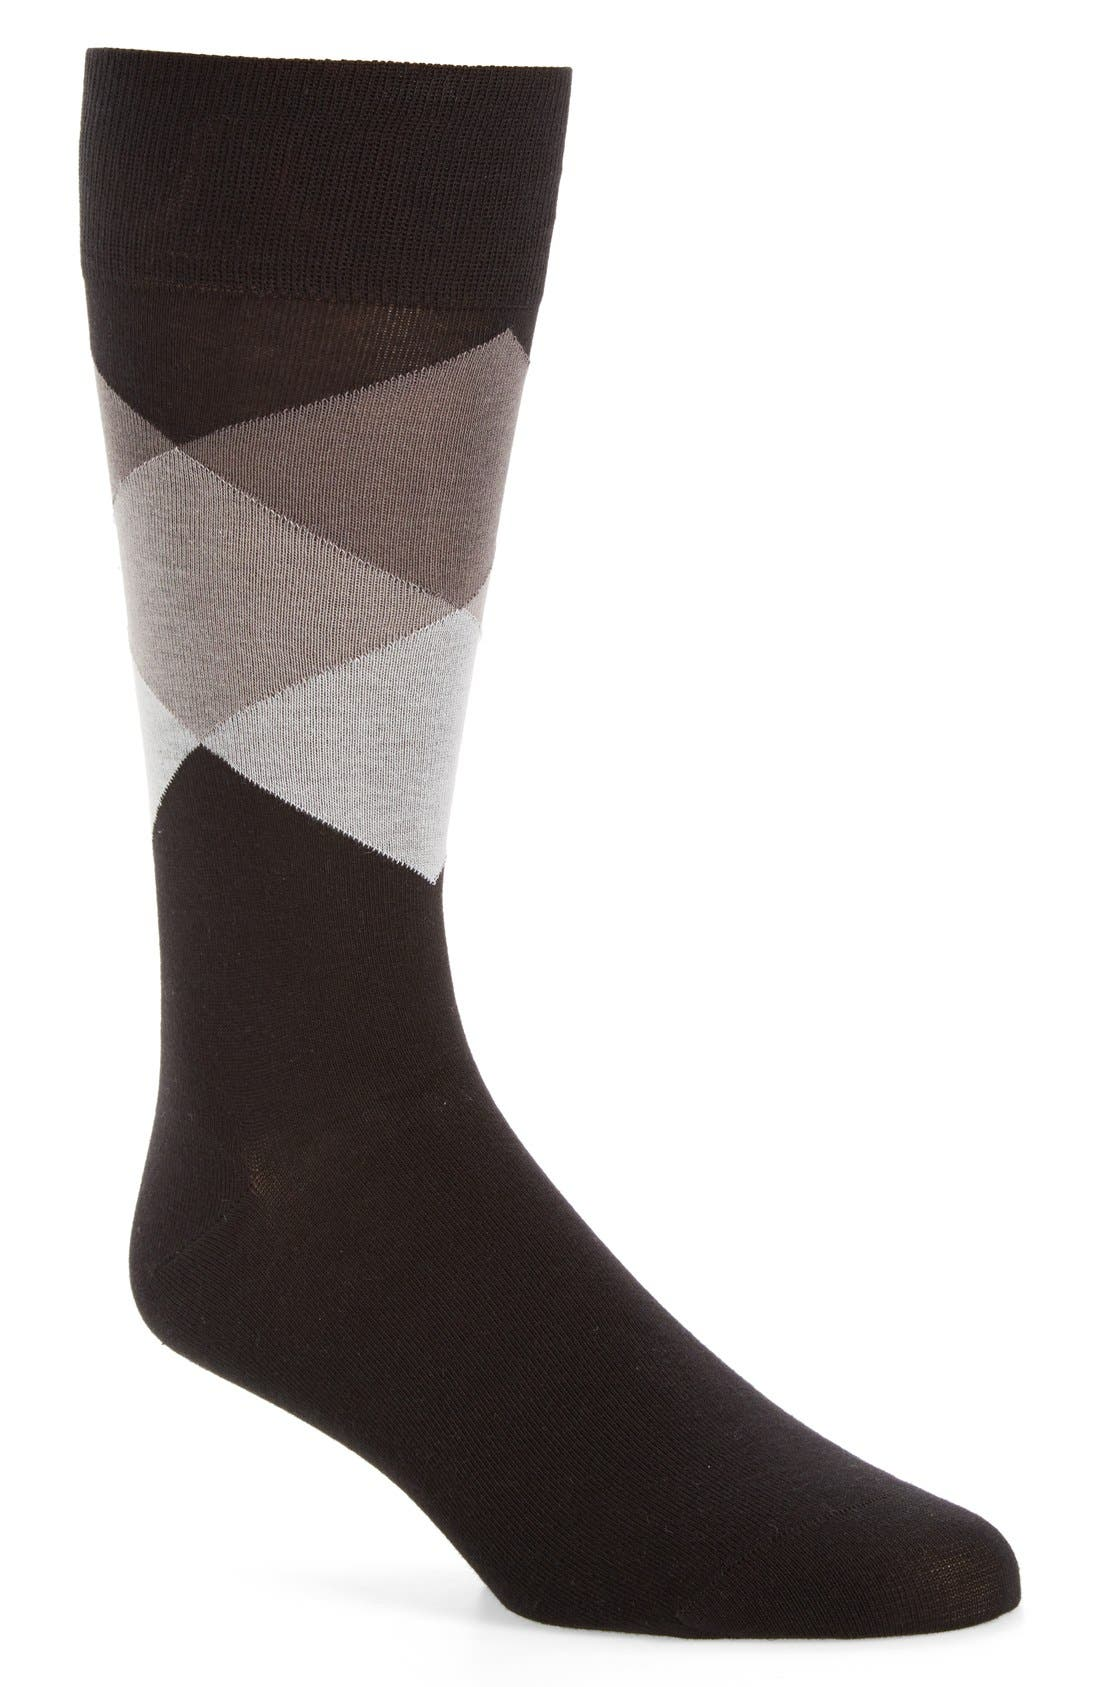 Main Image - Cole Haan Large Diamond Crew Socks